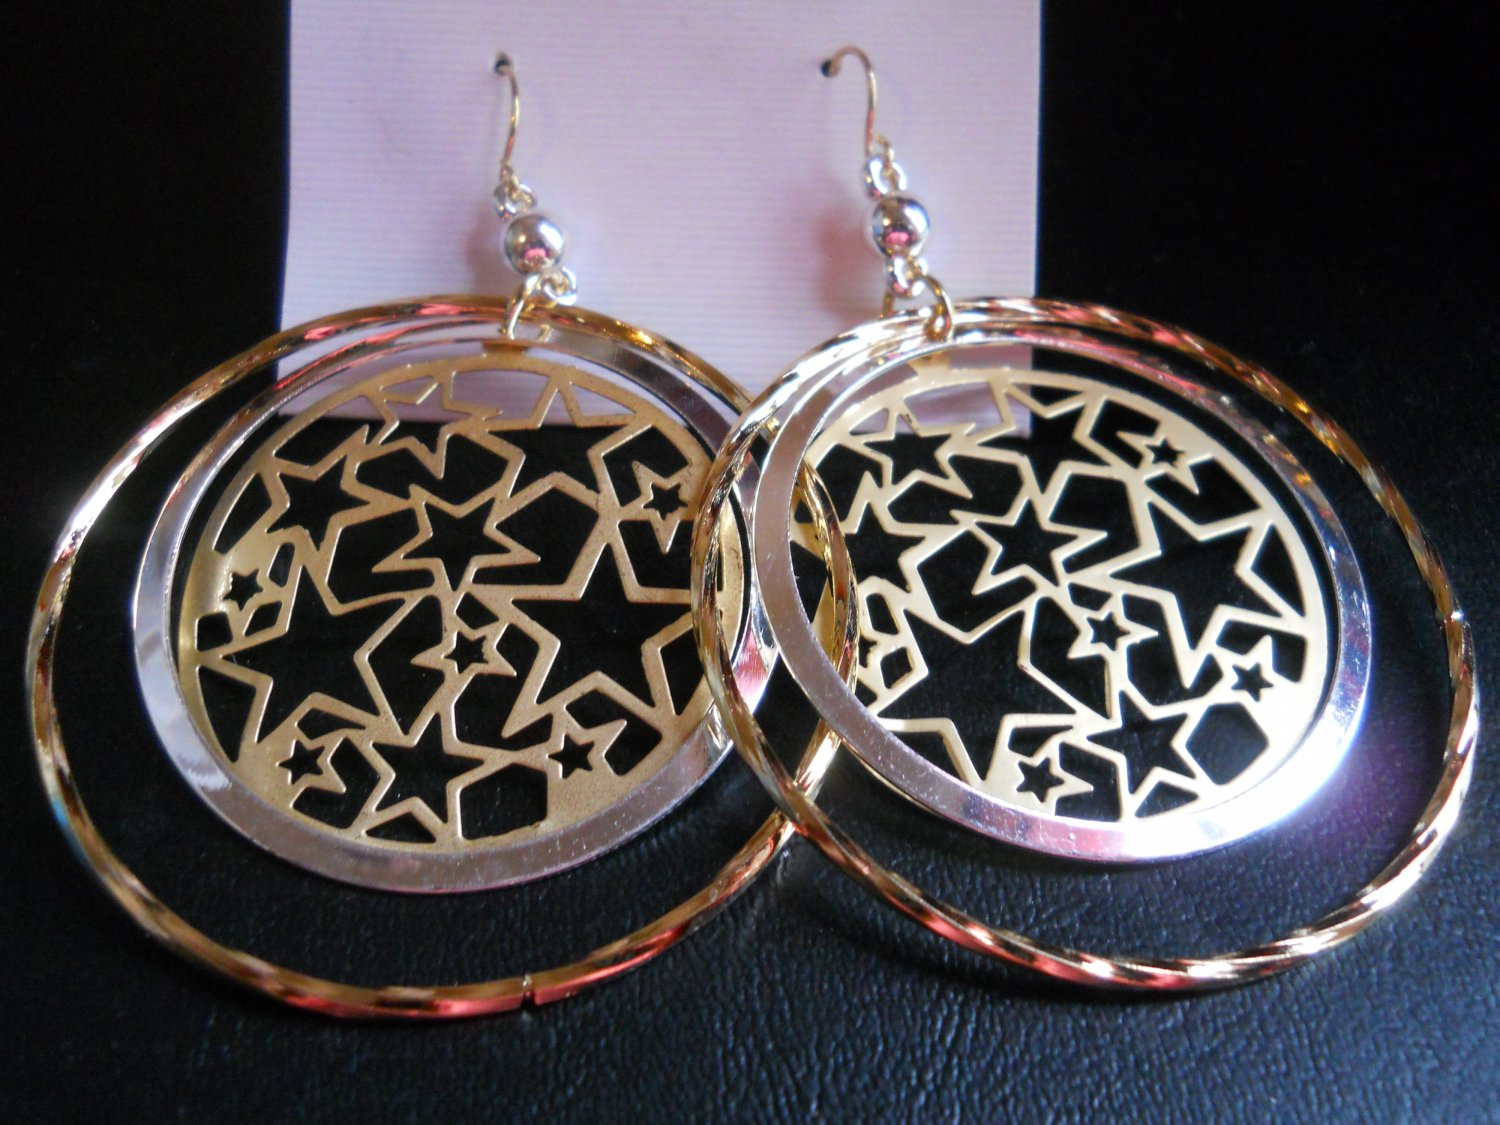 SILVER & GOLD TONED HOOPS W/STAR DECO